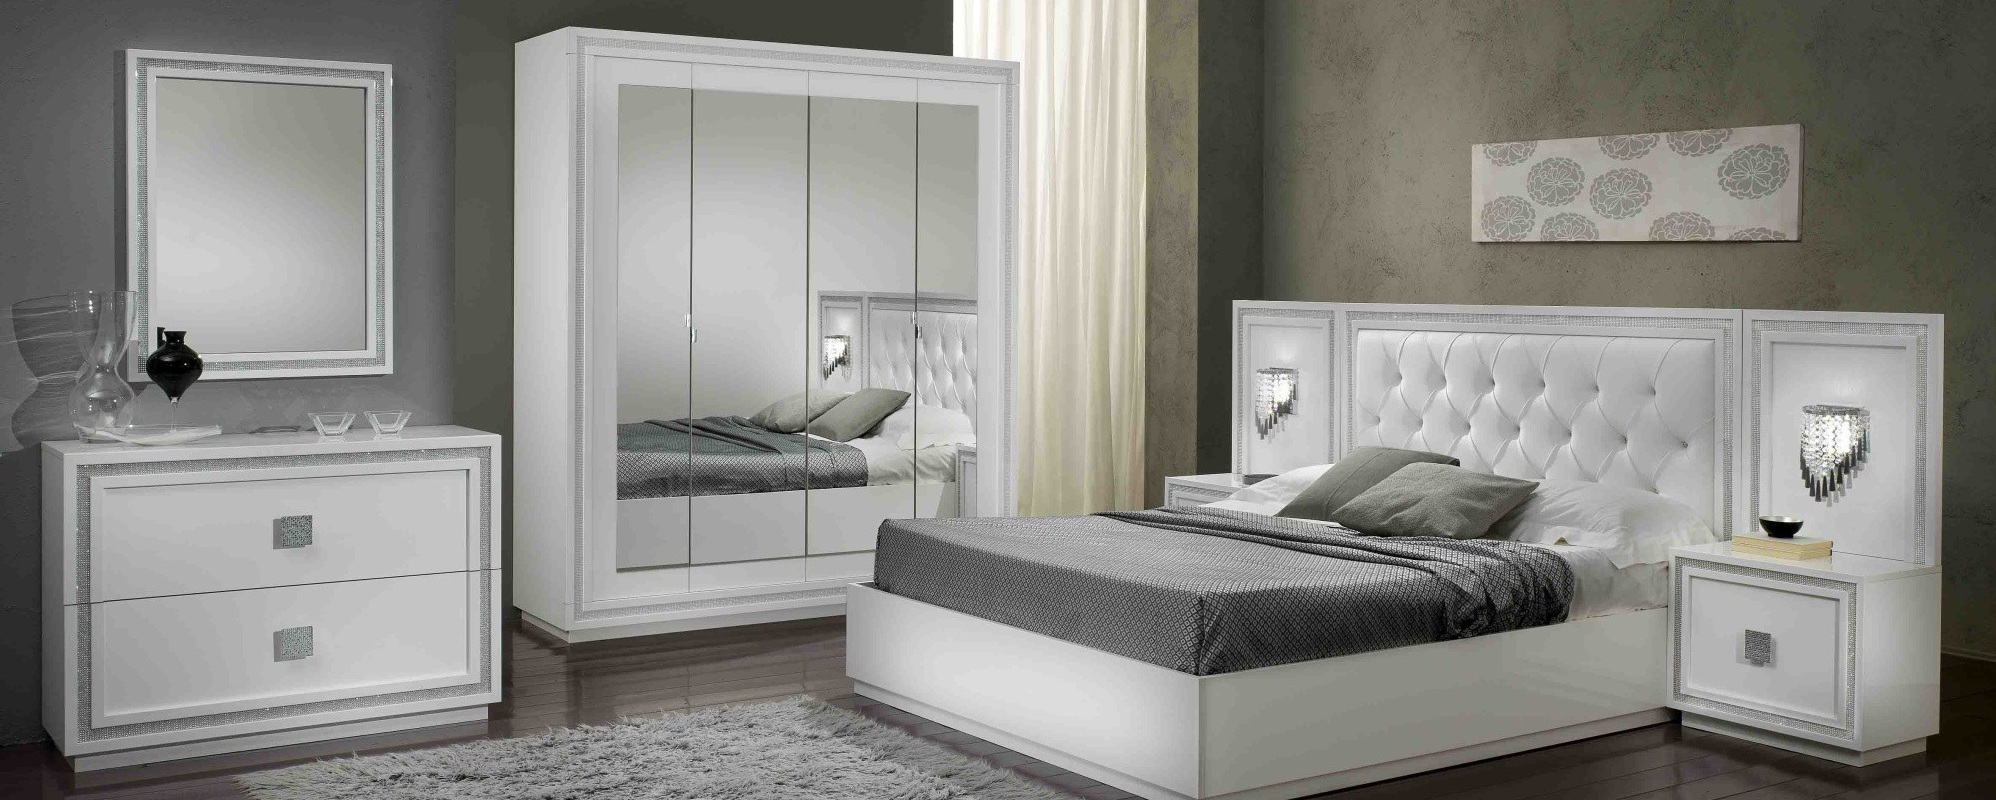 Conforama chambre for Exemple de chambre adulte